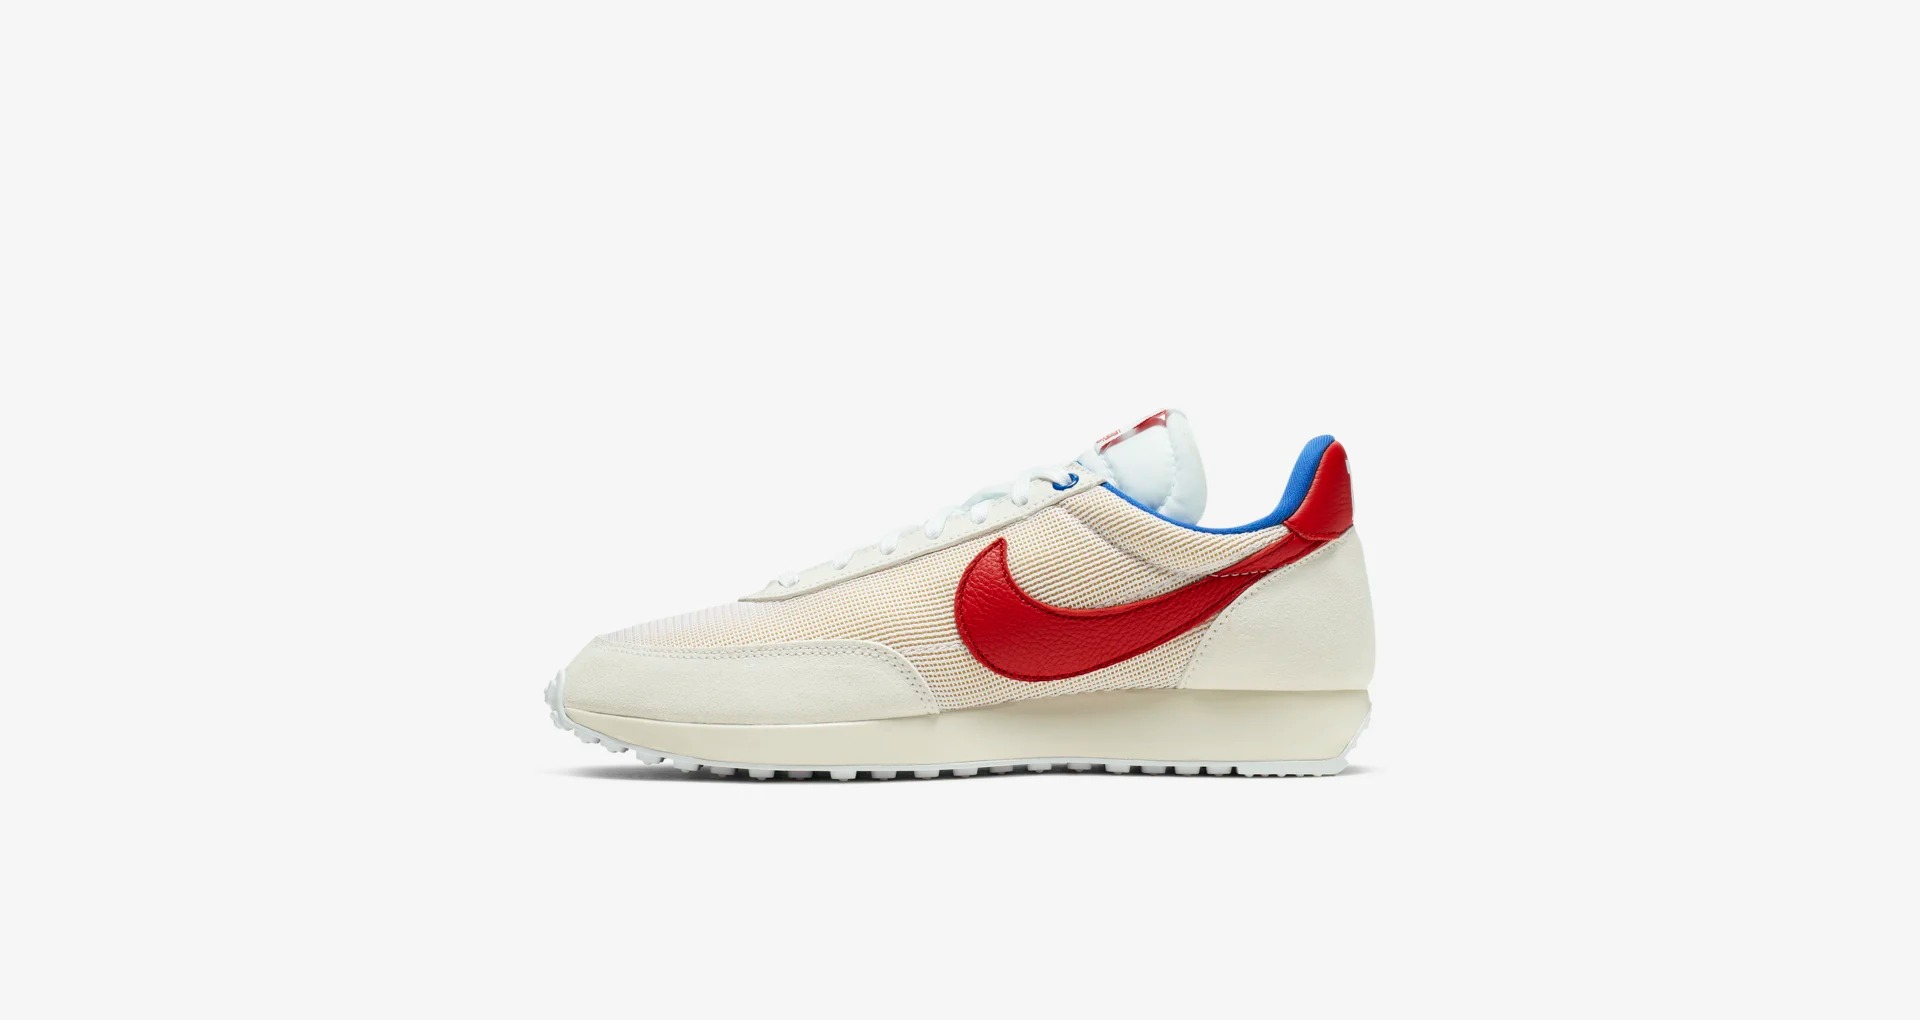 CK1905 100 Stranger Things x Nike Air Tailwind 79 1